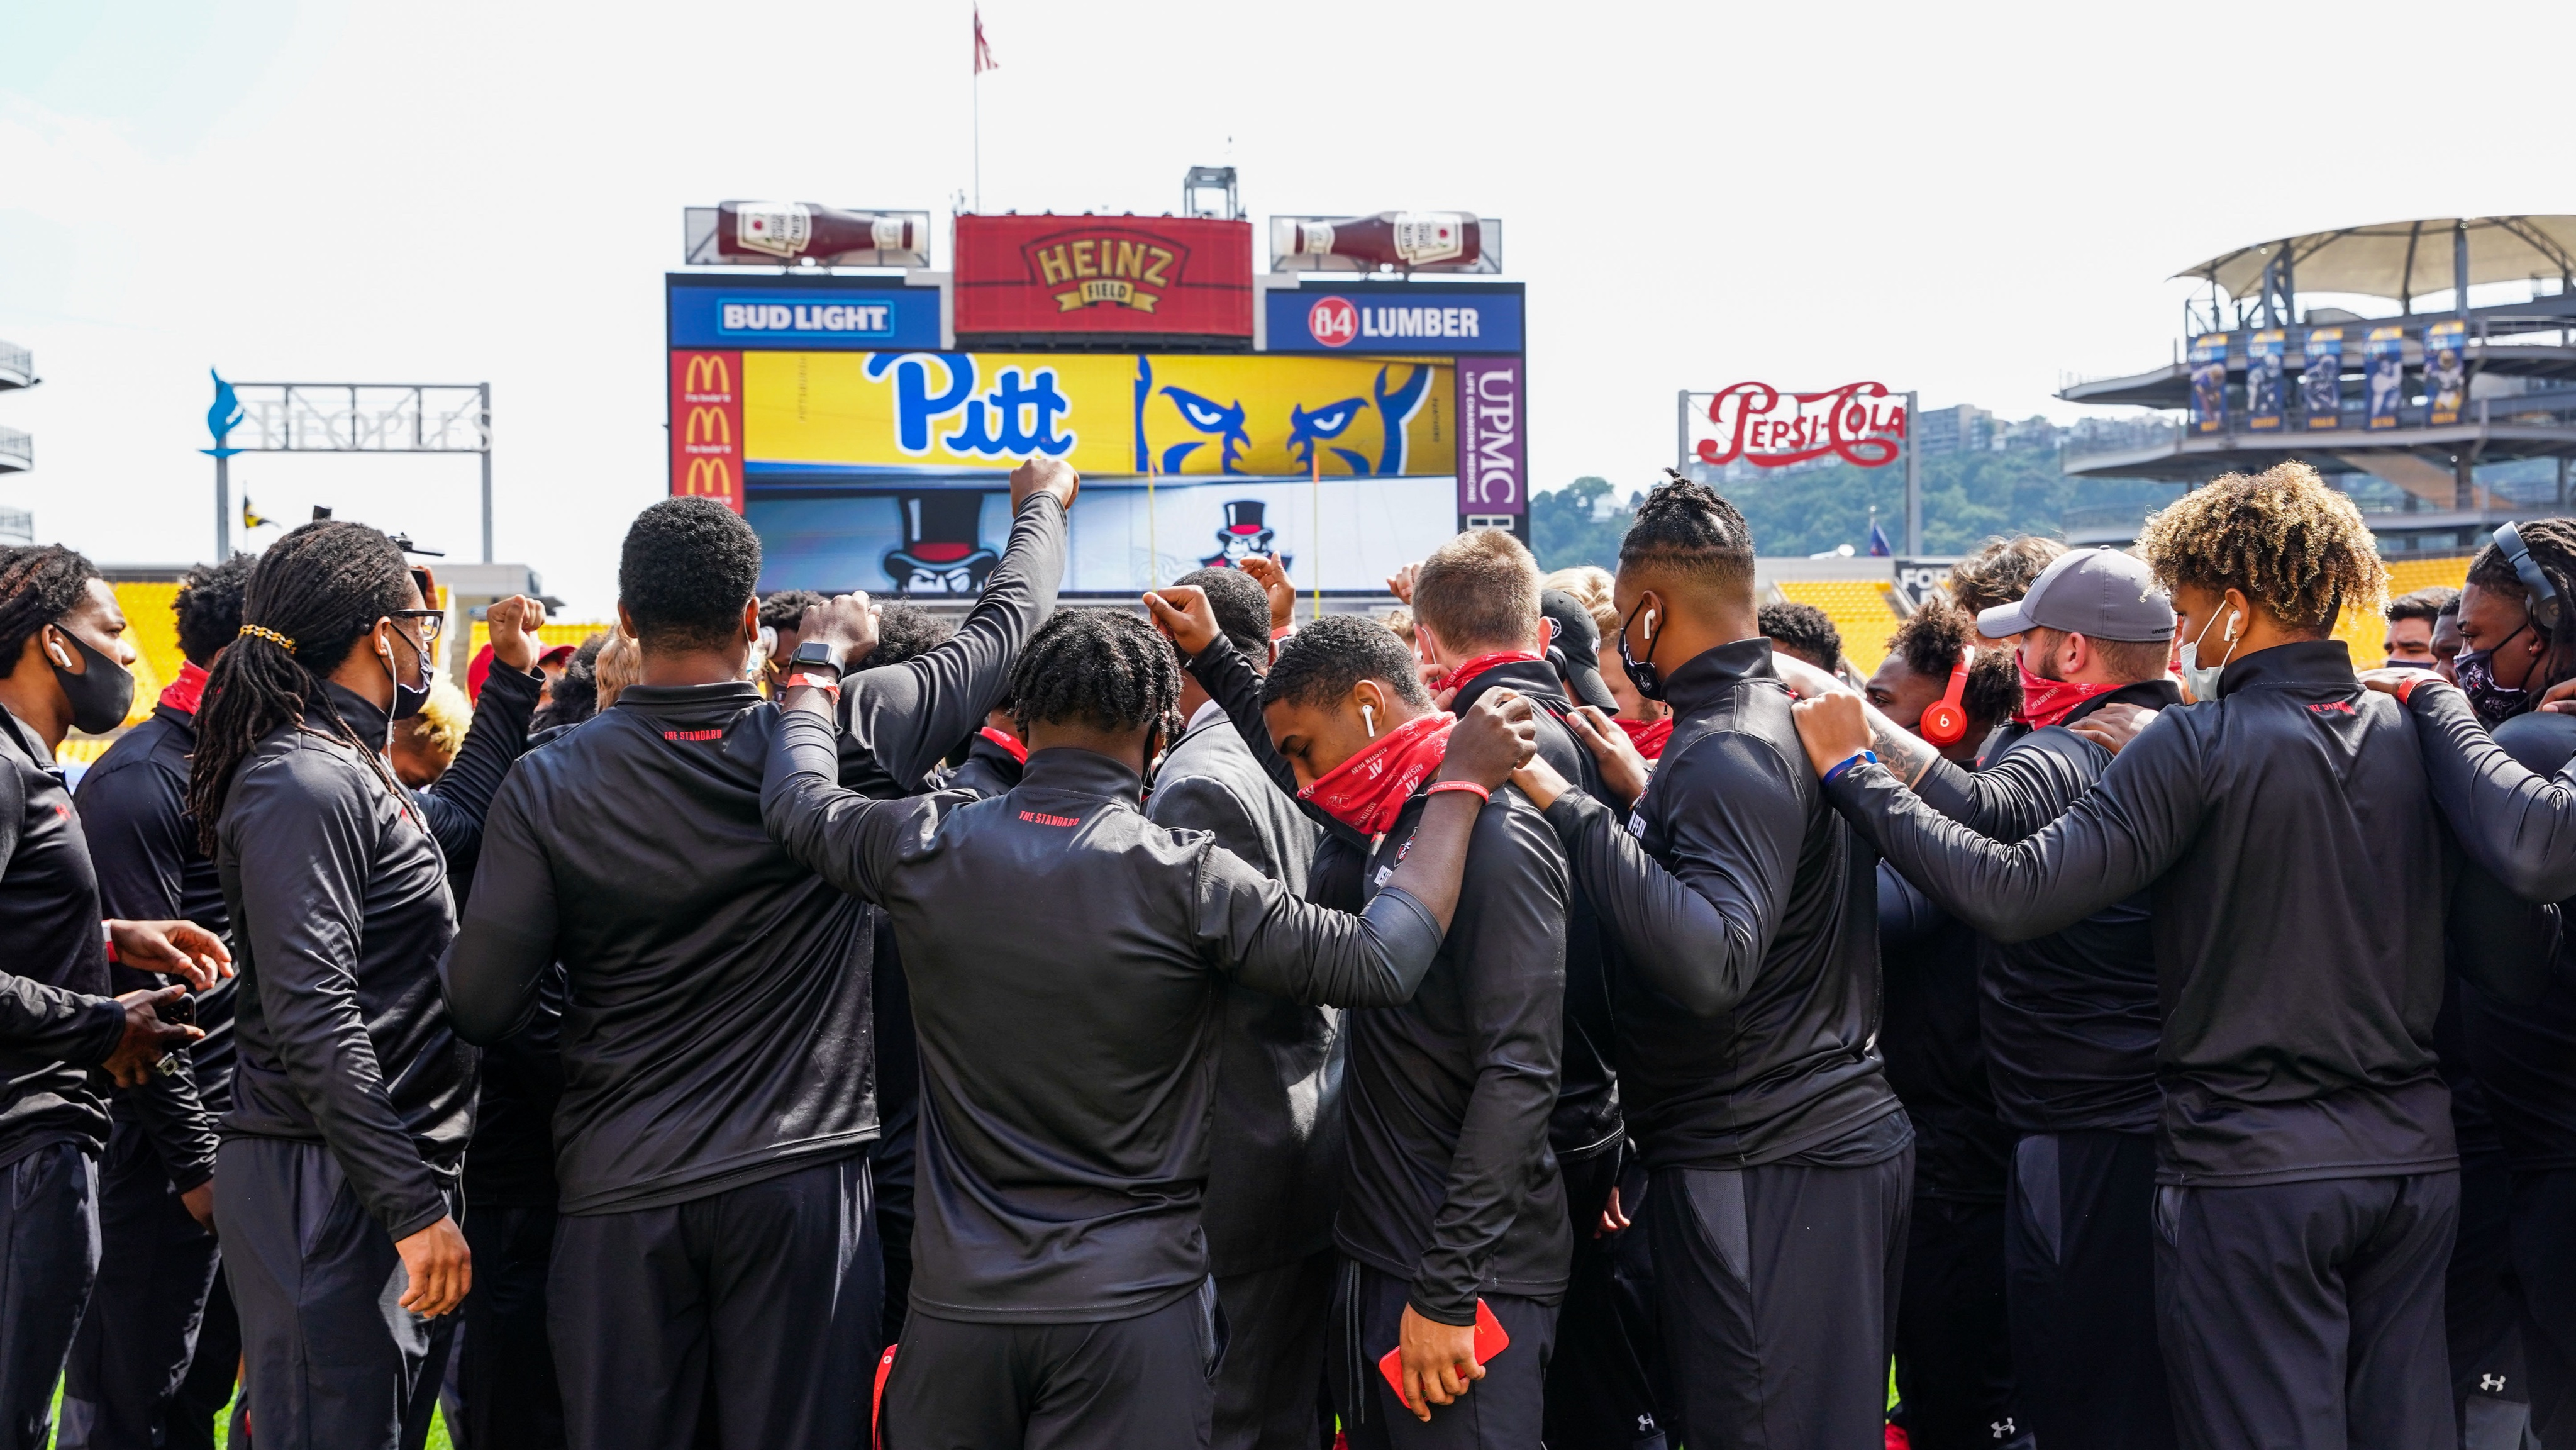 The APSU football team was defeated by the University of Pittsburgh at Heinz Field on Sept. 12. The final score was 55-0 | APSU SPORTS INFORMATION